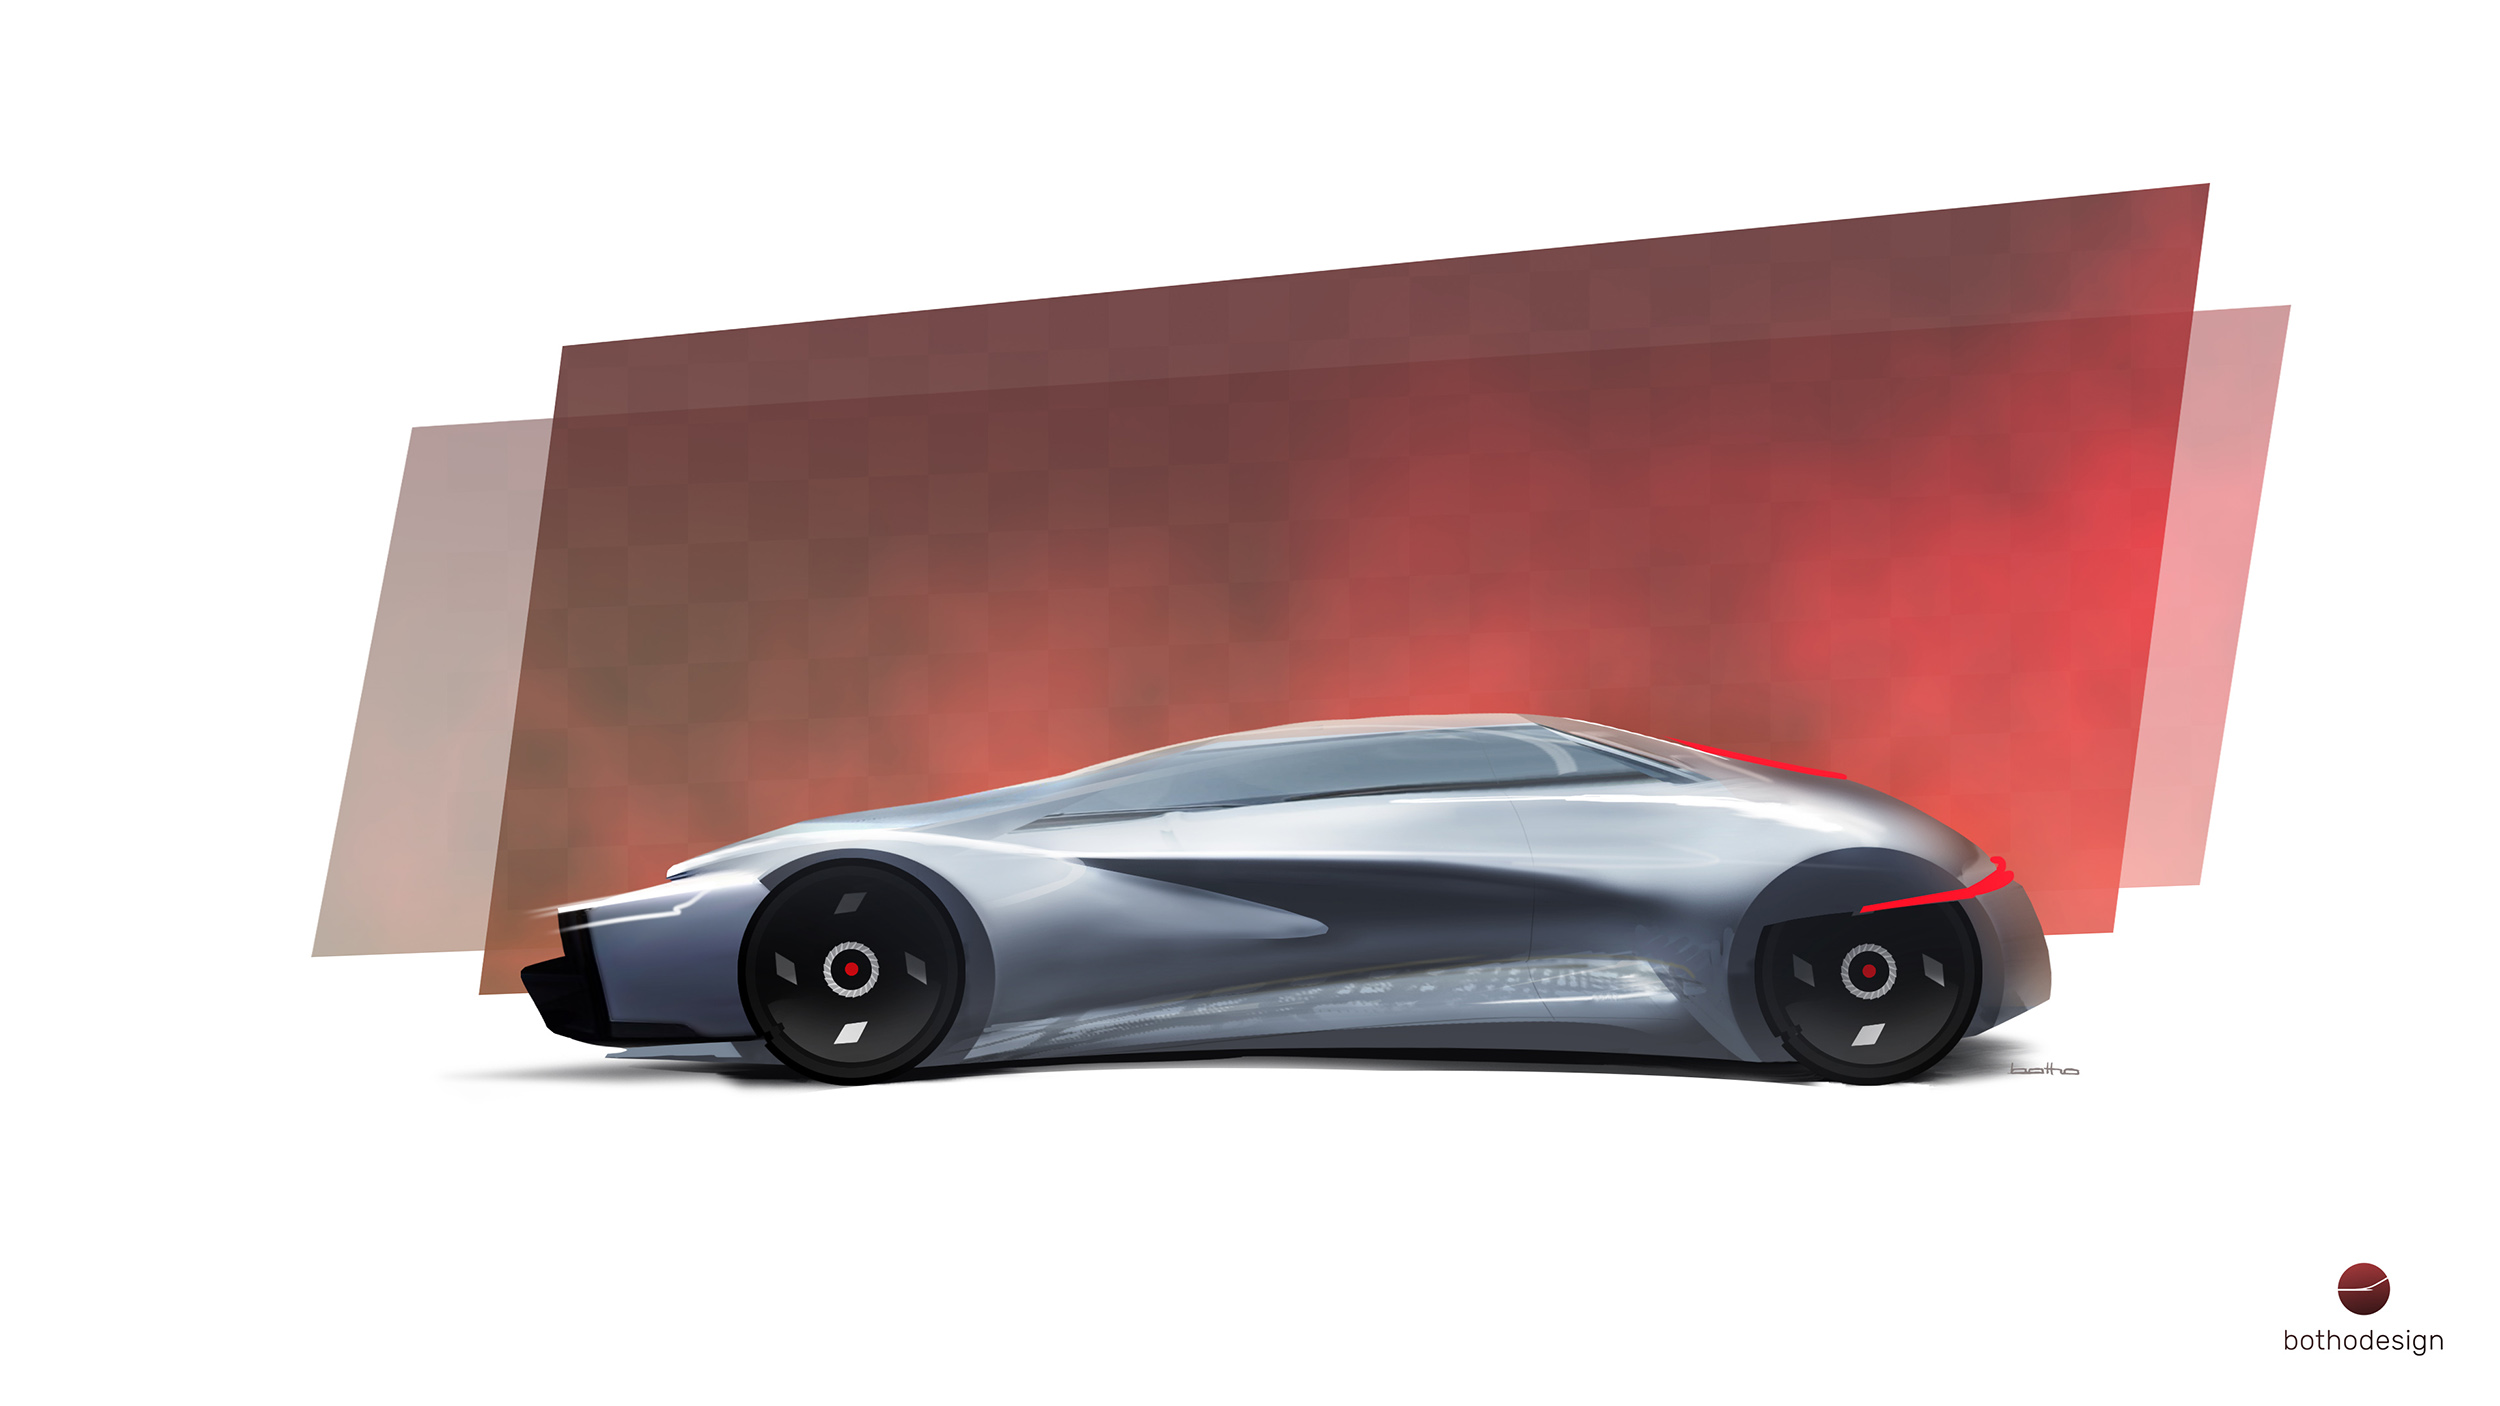 bothodesign-felix-haas-vehicle-automotive-concept-sketch_002